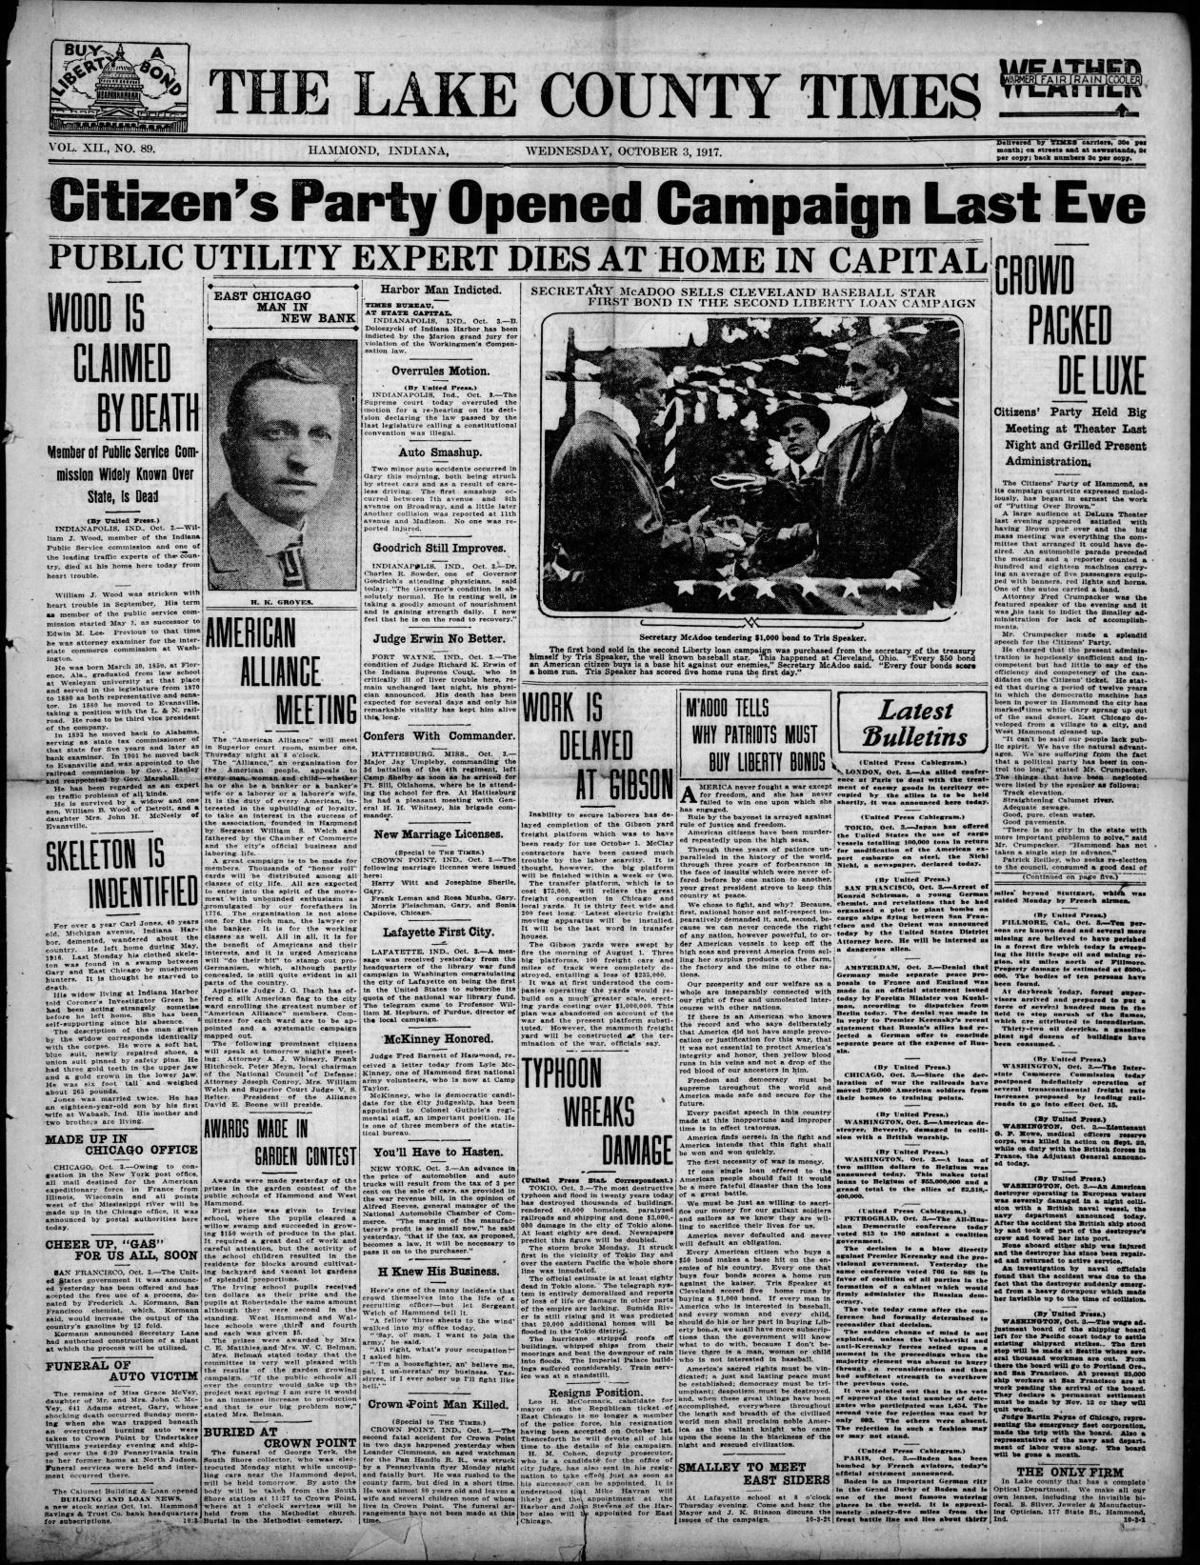 Oct. 3, 1917: Citizen's Party Opened Campaign Last Eve